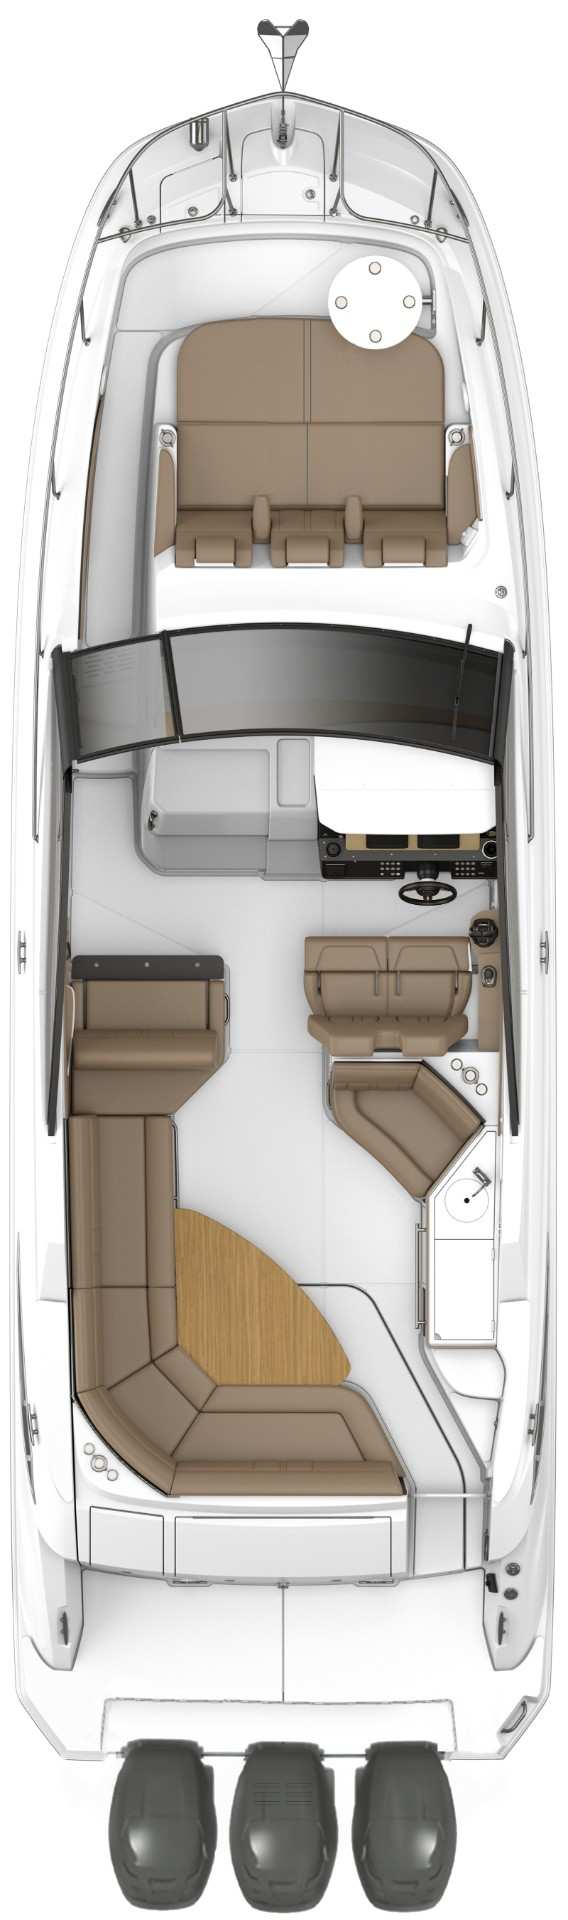 Sundancer 320 Outboard Cockpit floor plan